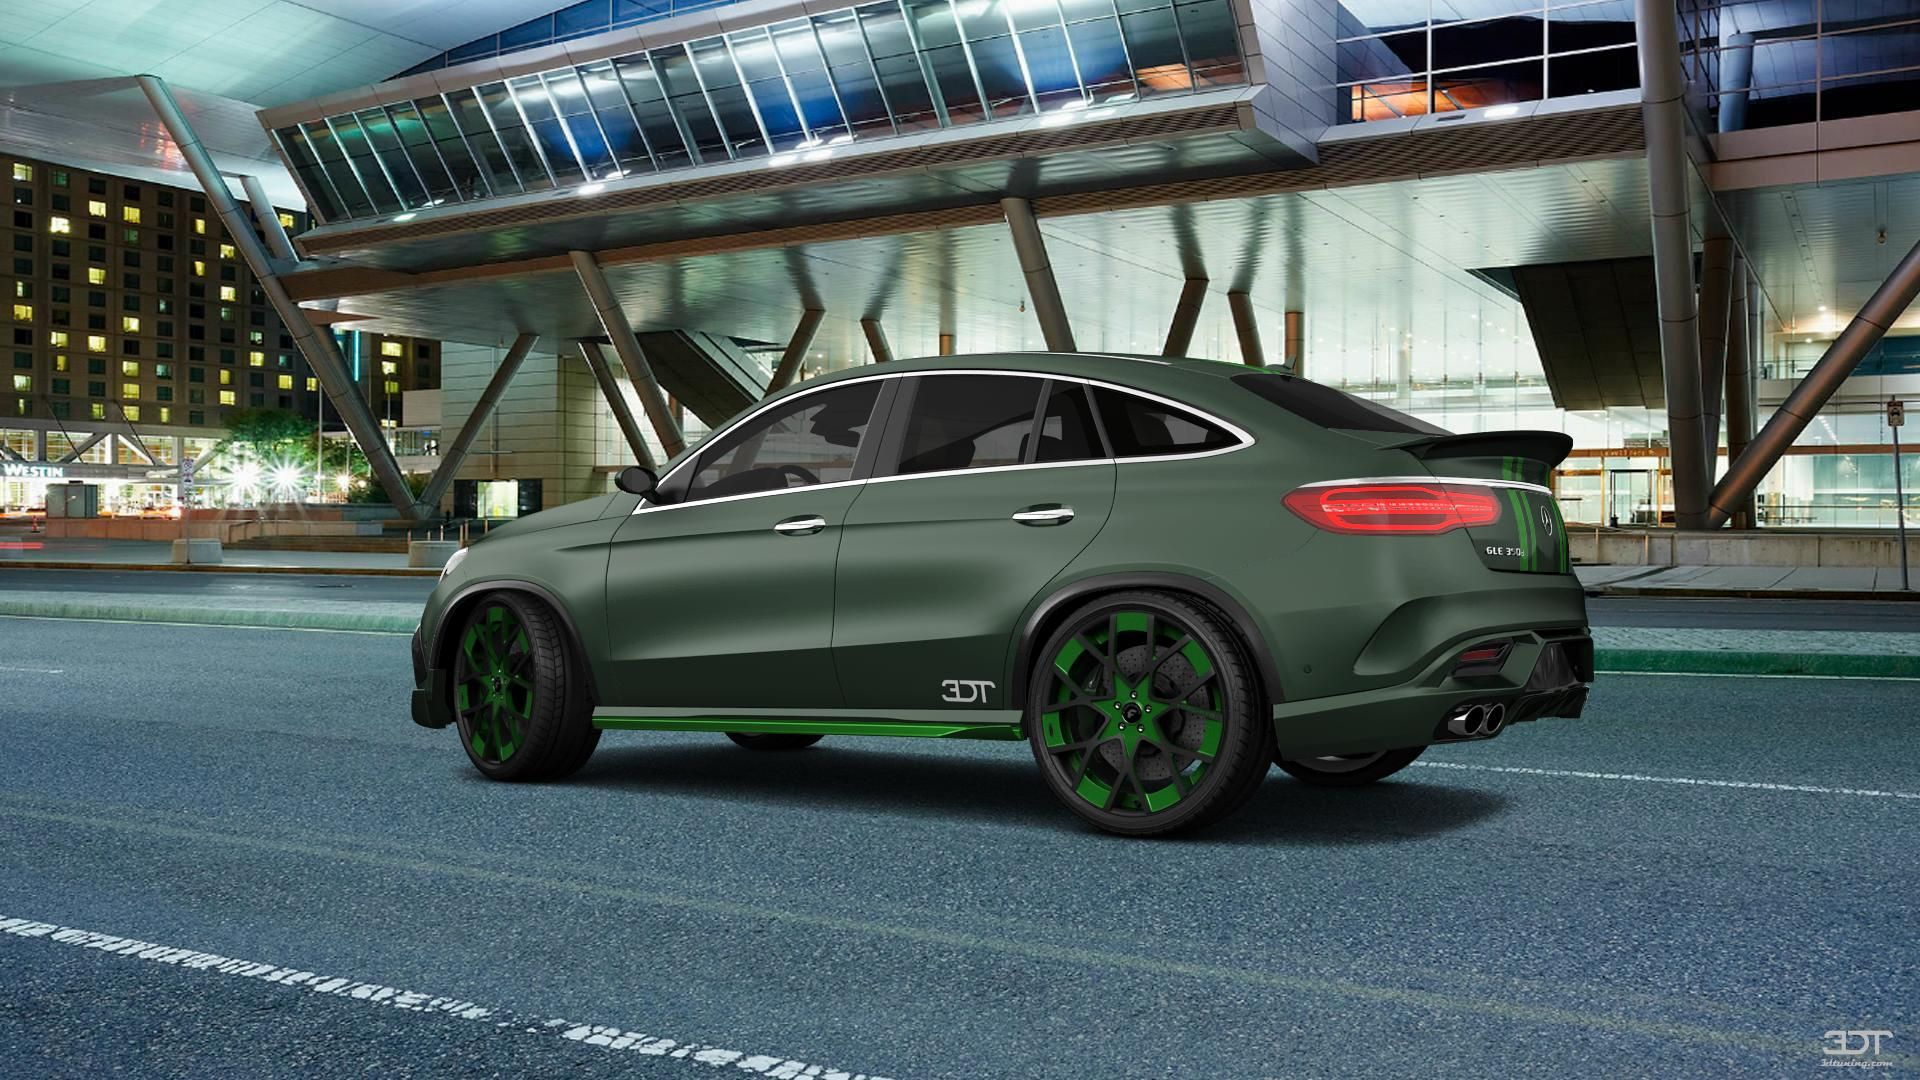 Checkout my tuning Mercedes GLE 2016 at 3DTuning 3dtuning tuning